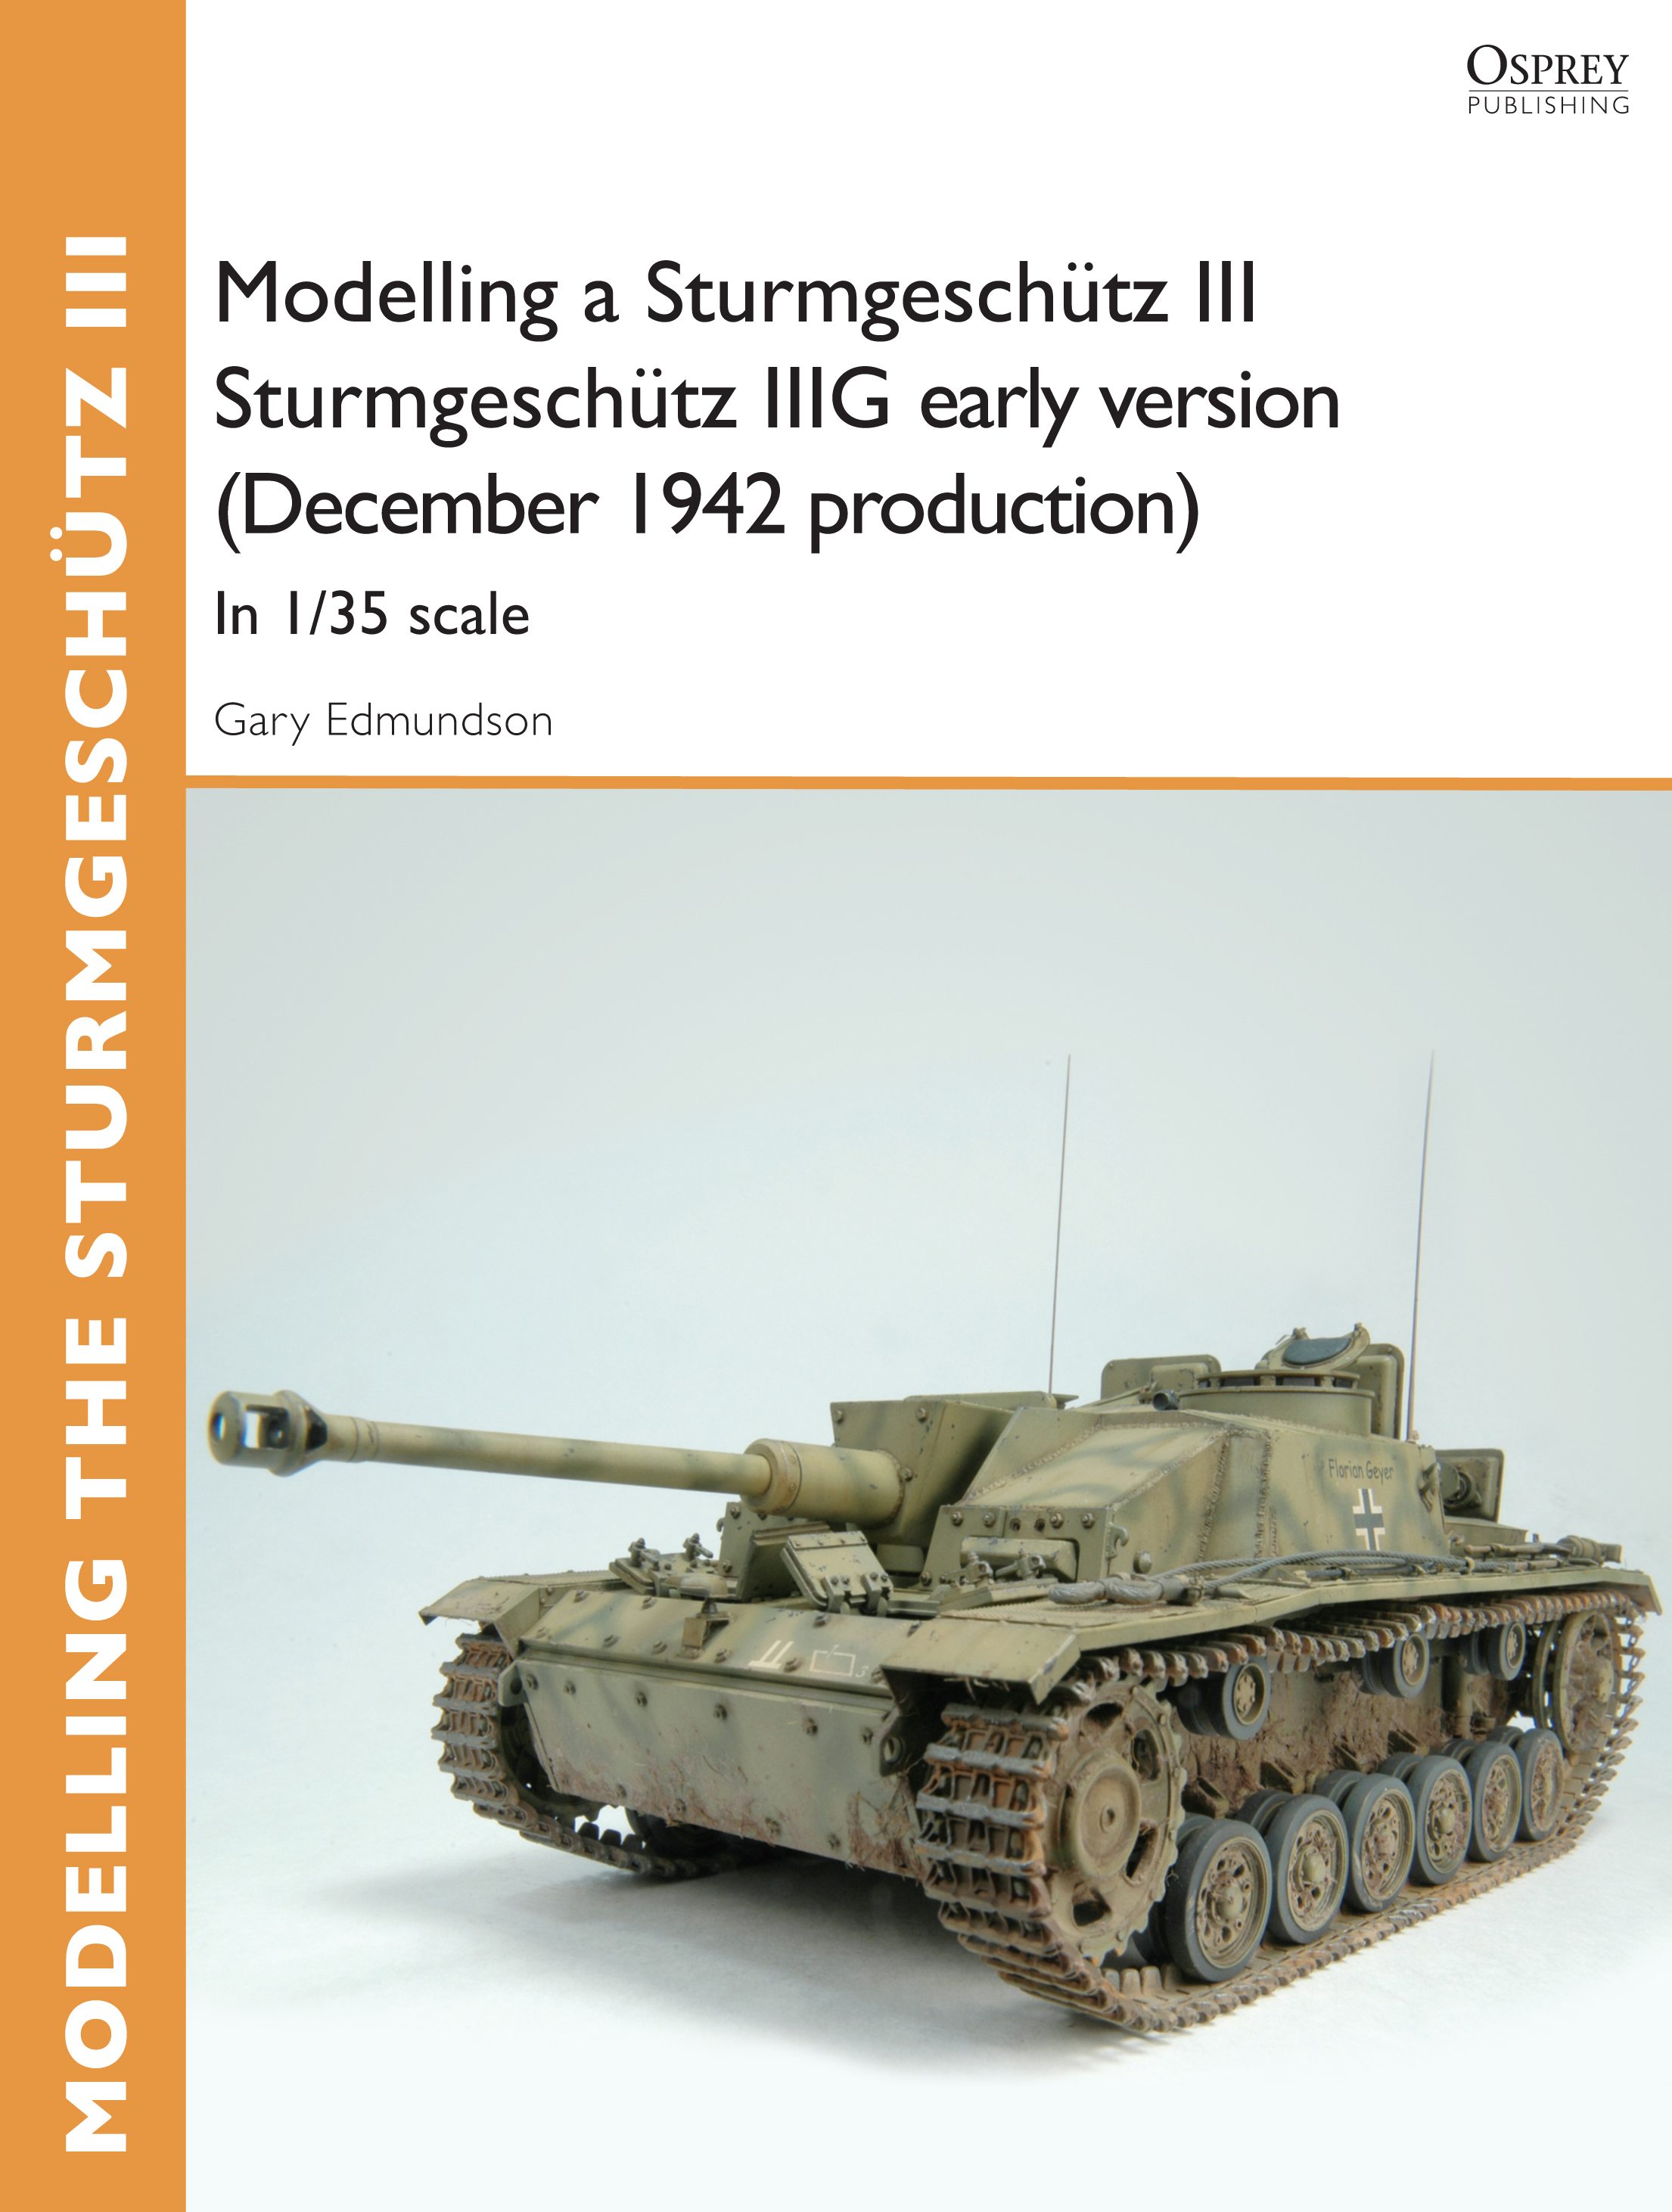 Modelling a Sturmgesch�tz III Sturmgesch�tz IIIG early version (December 1942 production): In 1/35 scale